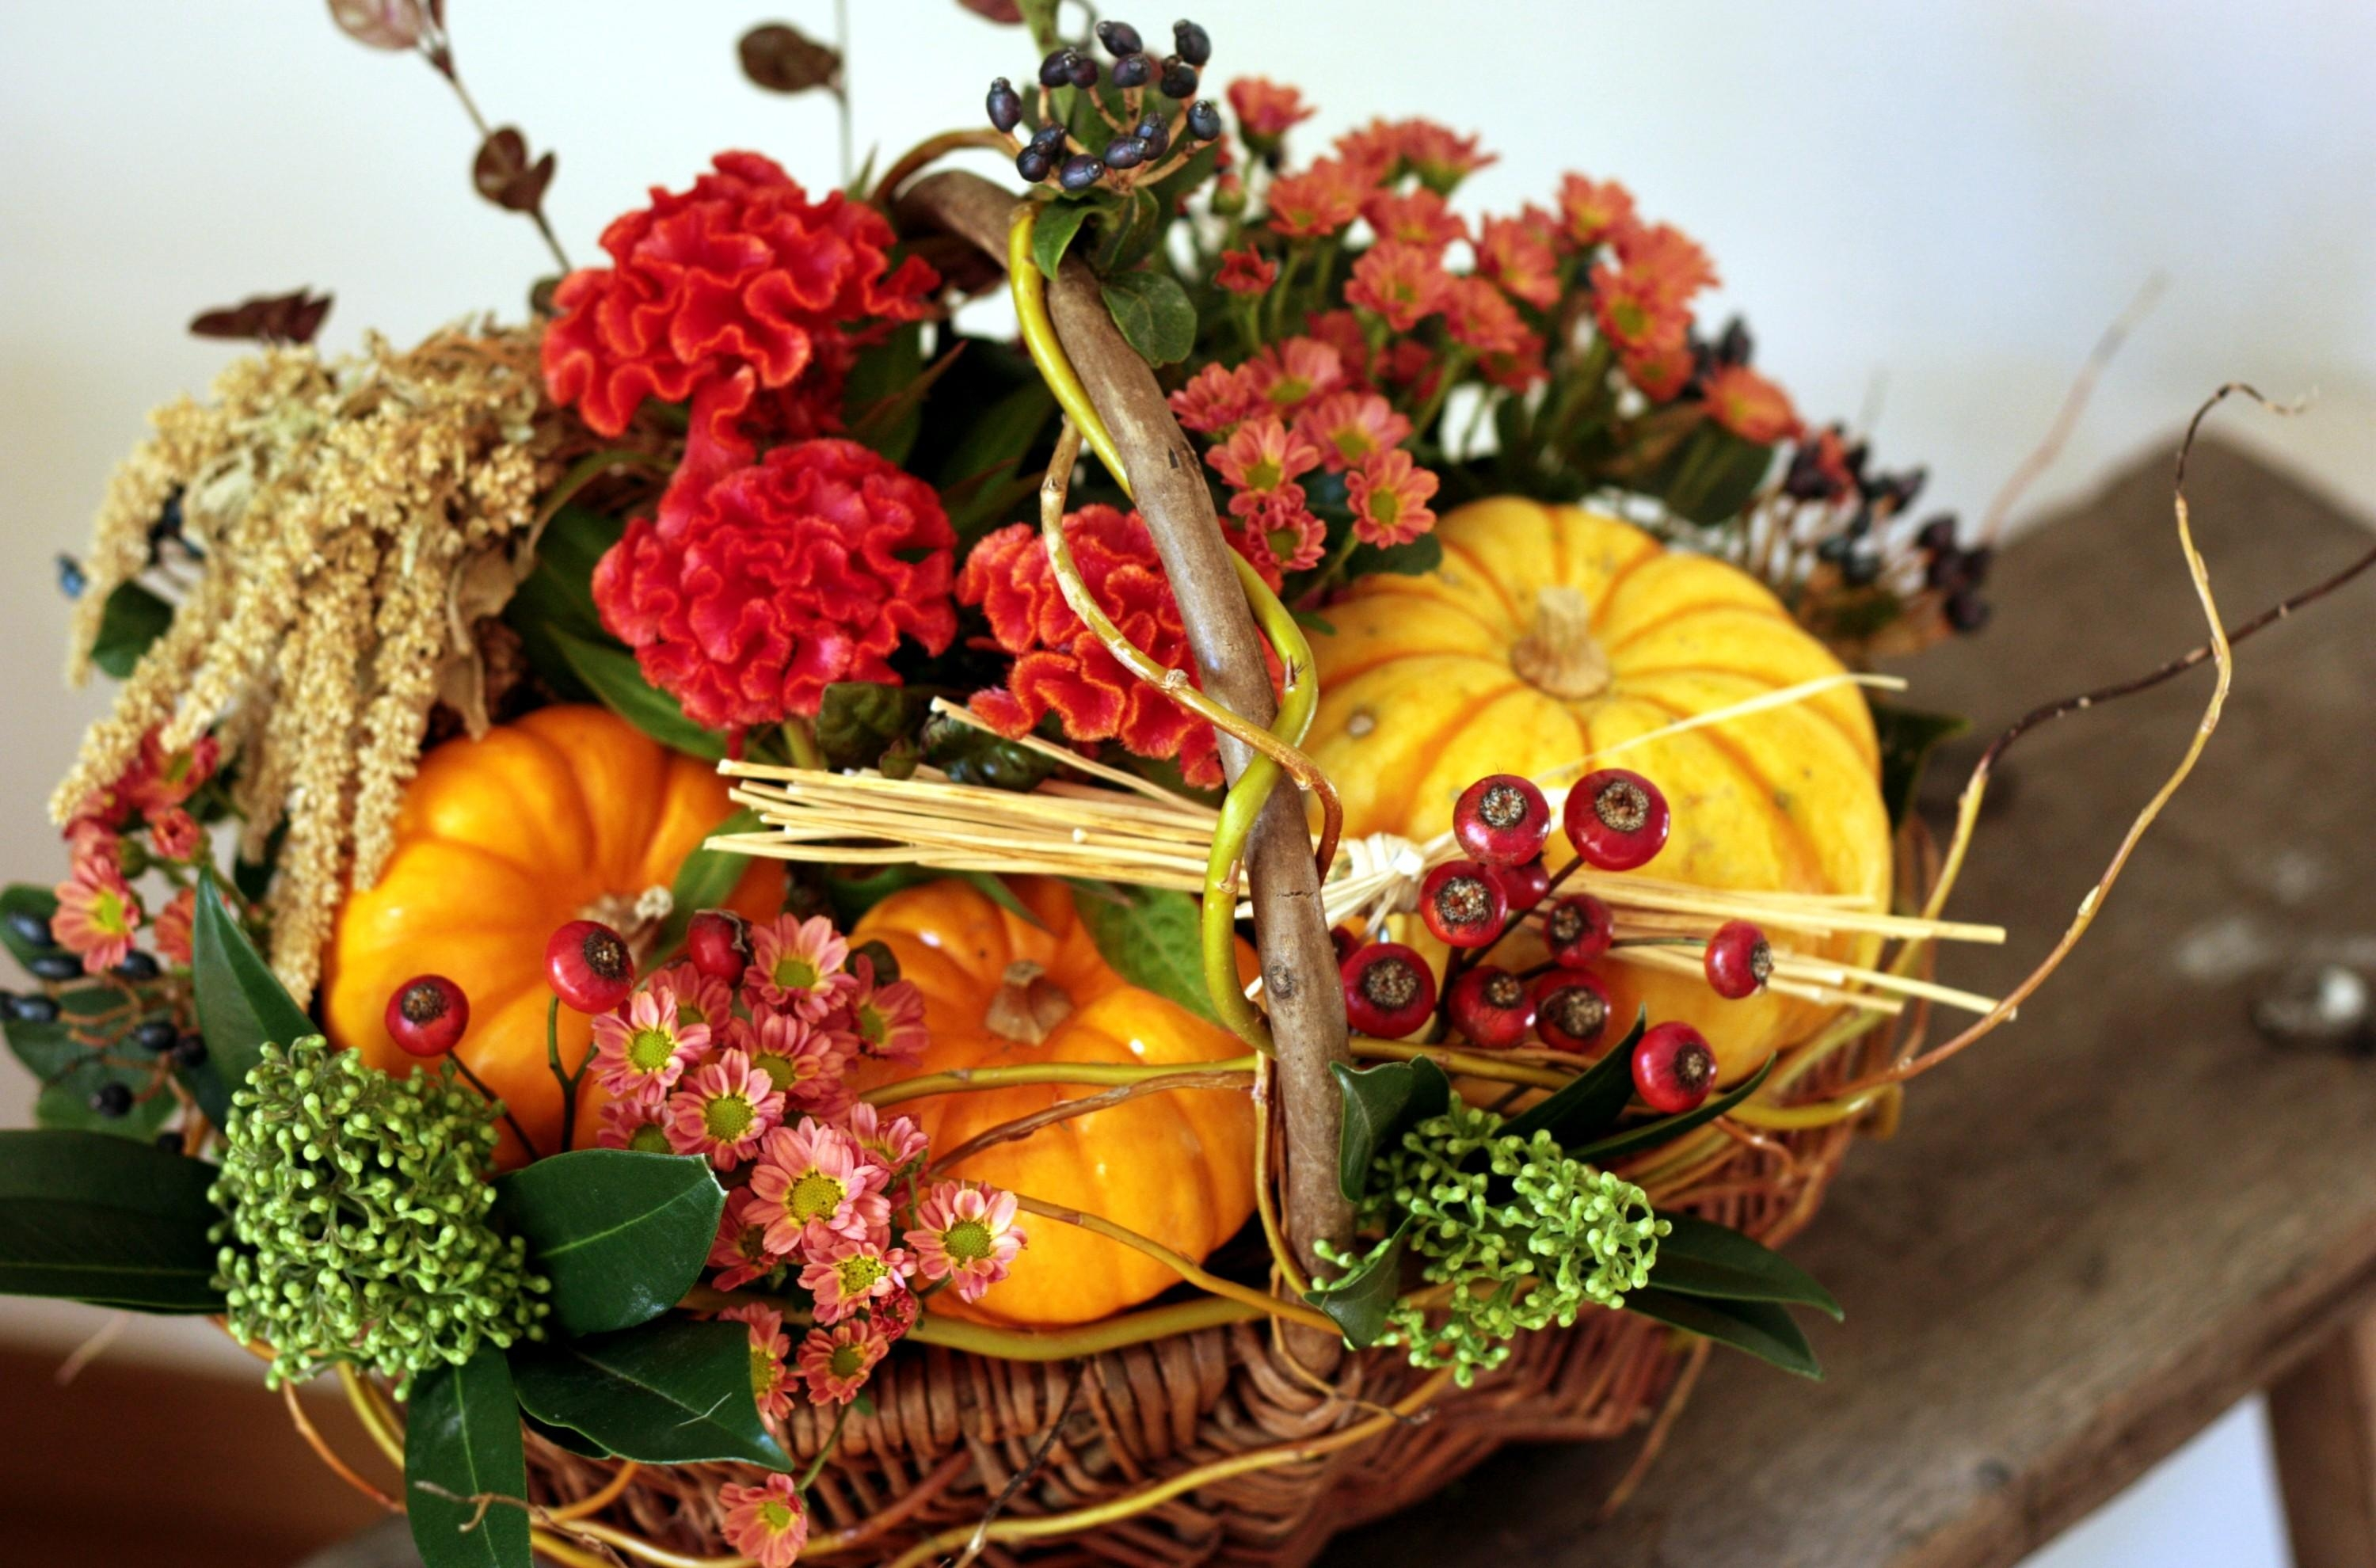 77945 download wallpaper Flowers, Amaranth, Basket, Pumpkin, Composition, Berries screensavers and pictures for free